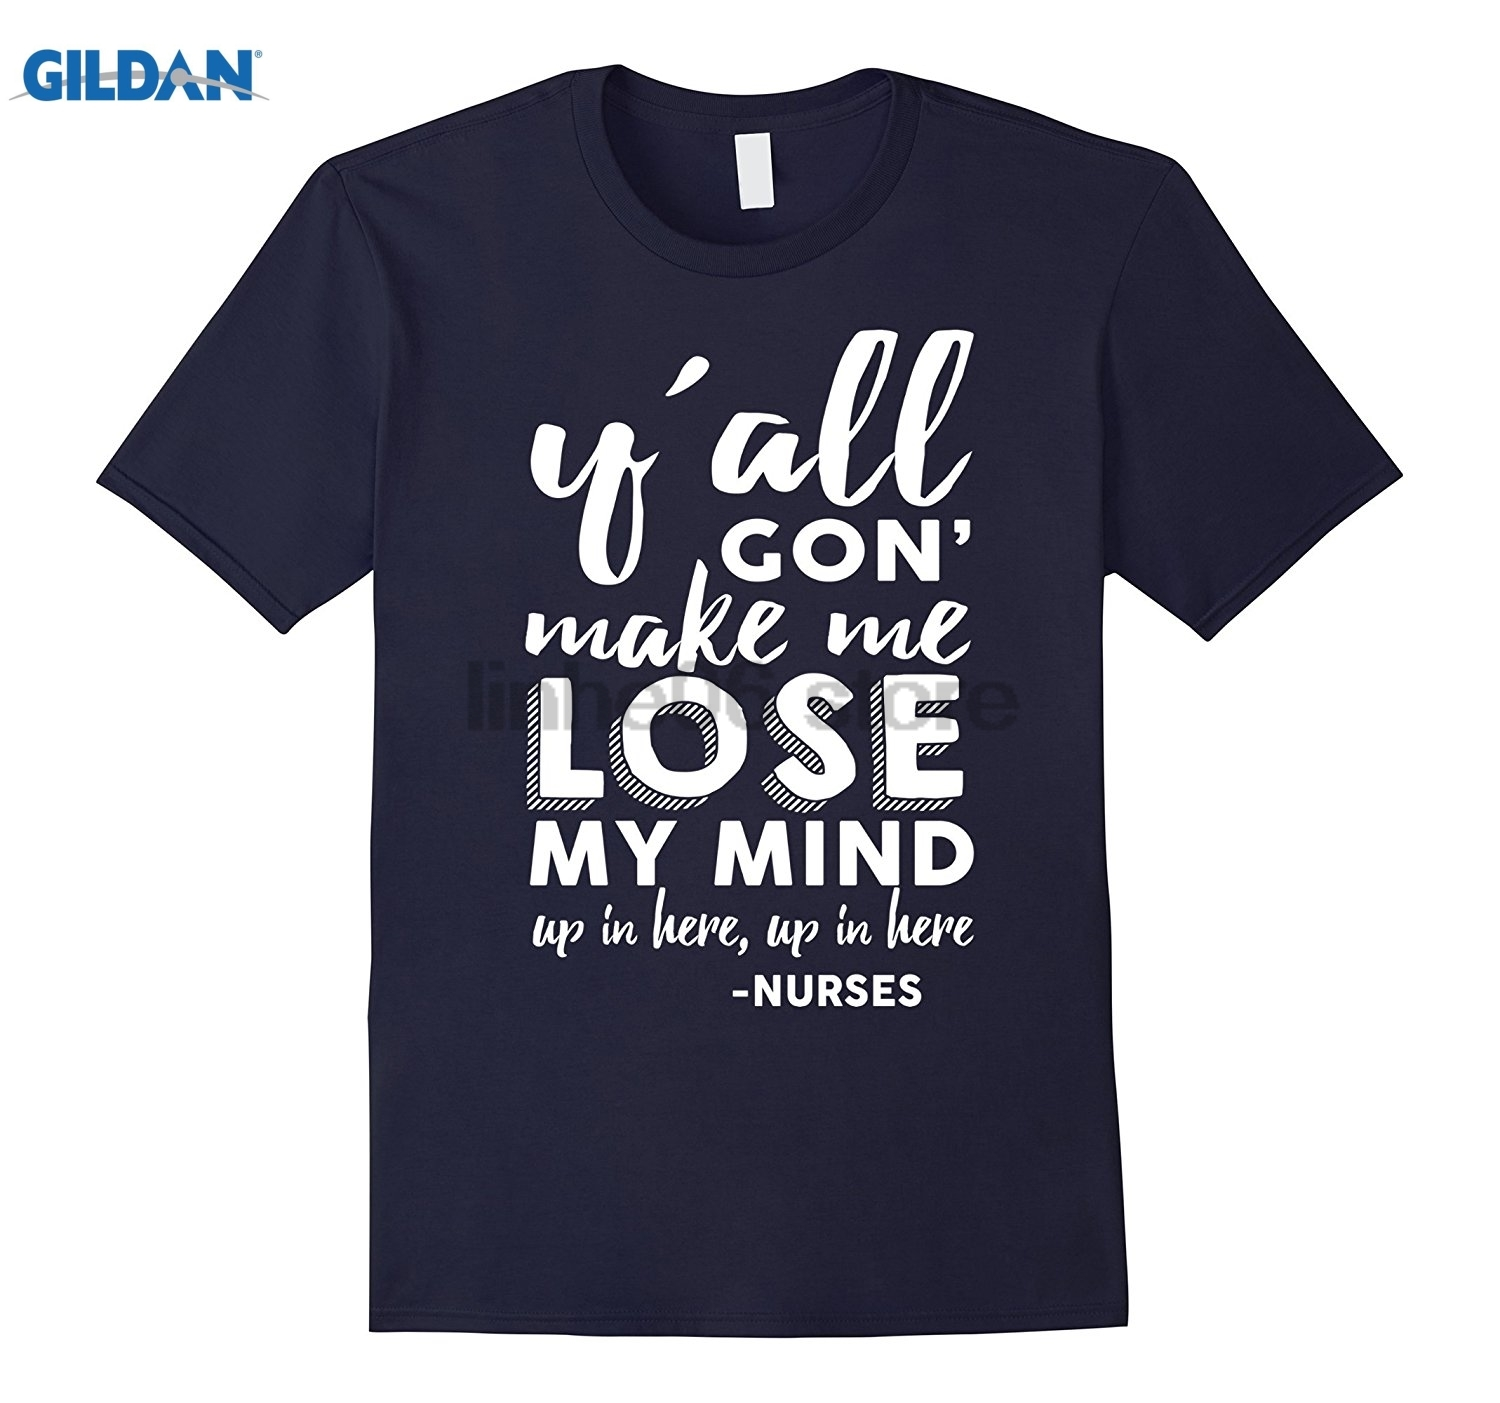 GILDAN Womens yall gon make me lose my mind T-shirt- Nurses T summer dress T-shirt ...